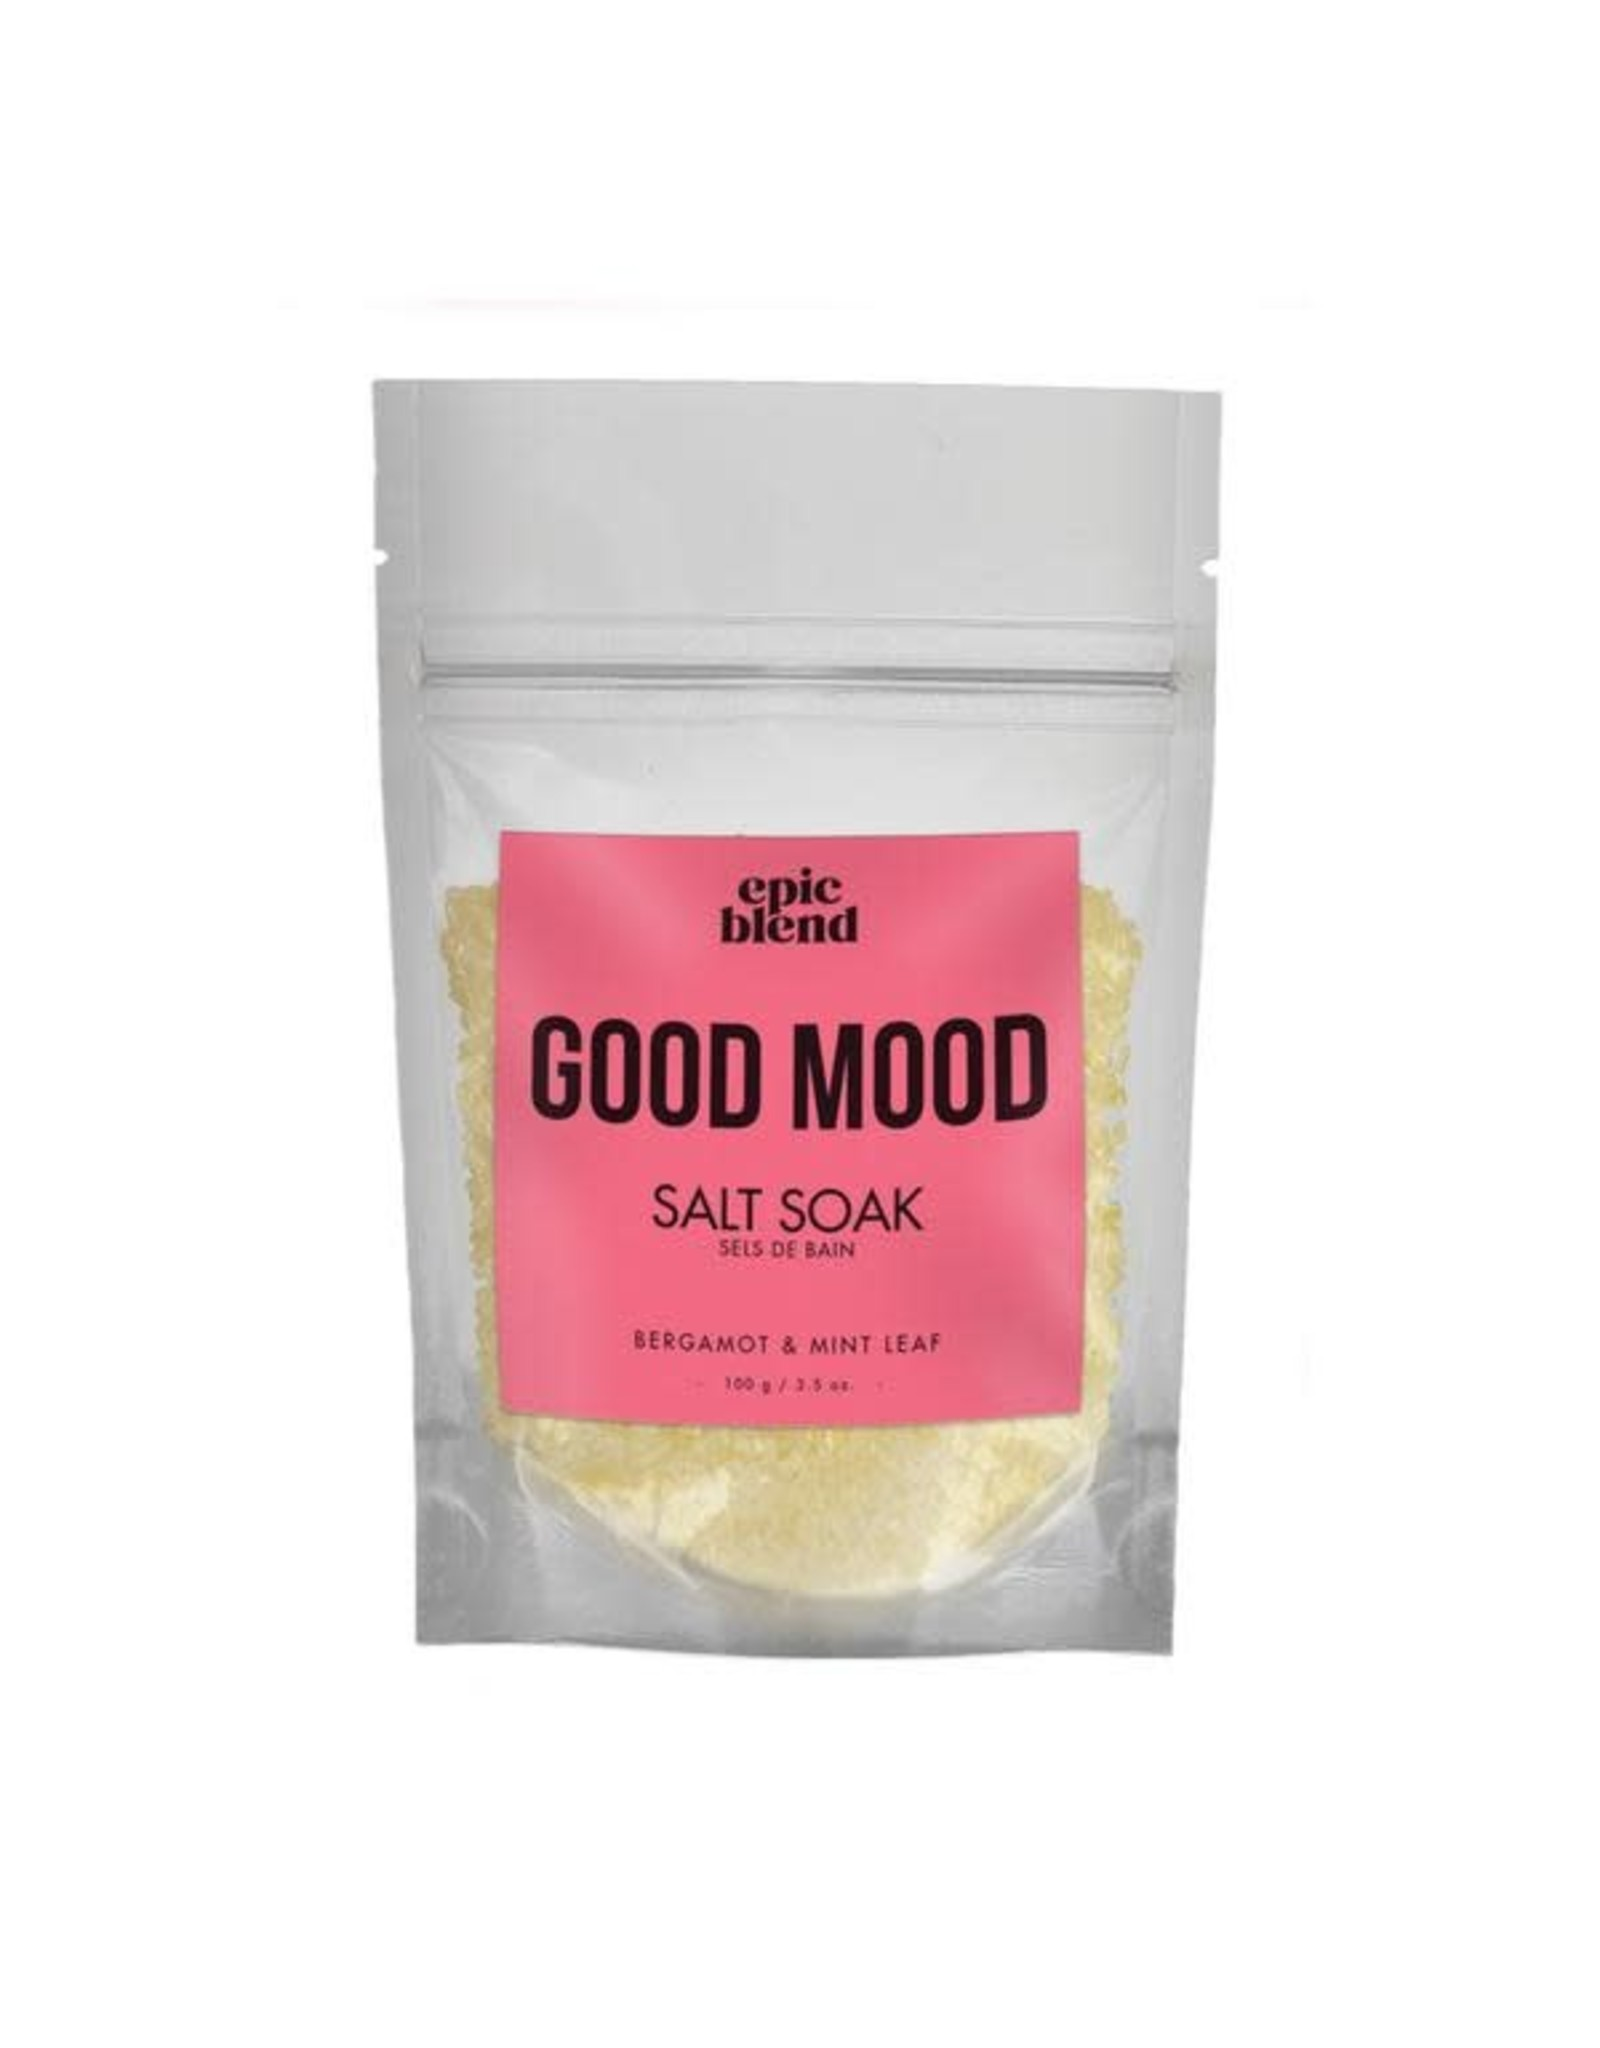 Epic Blend Good Mood Salt Soak